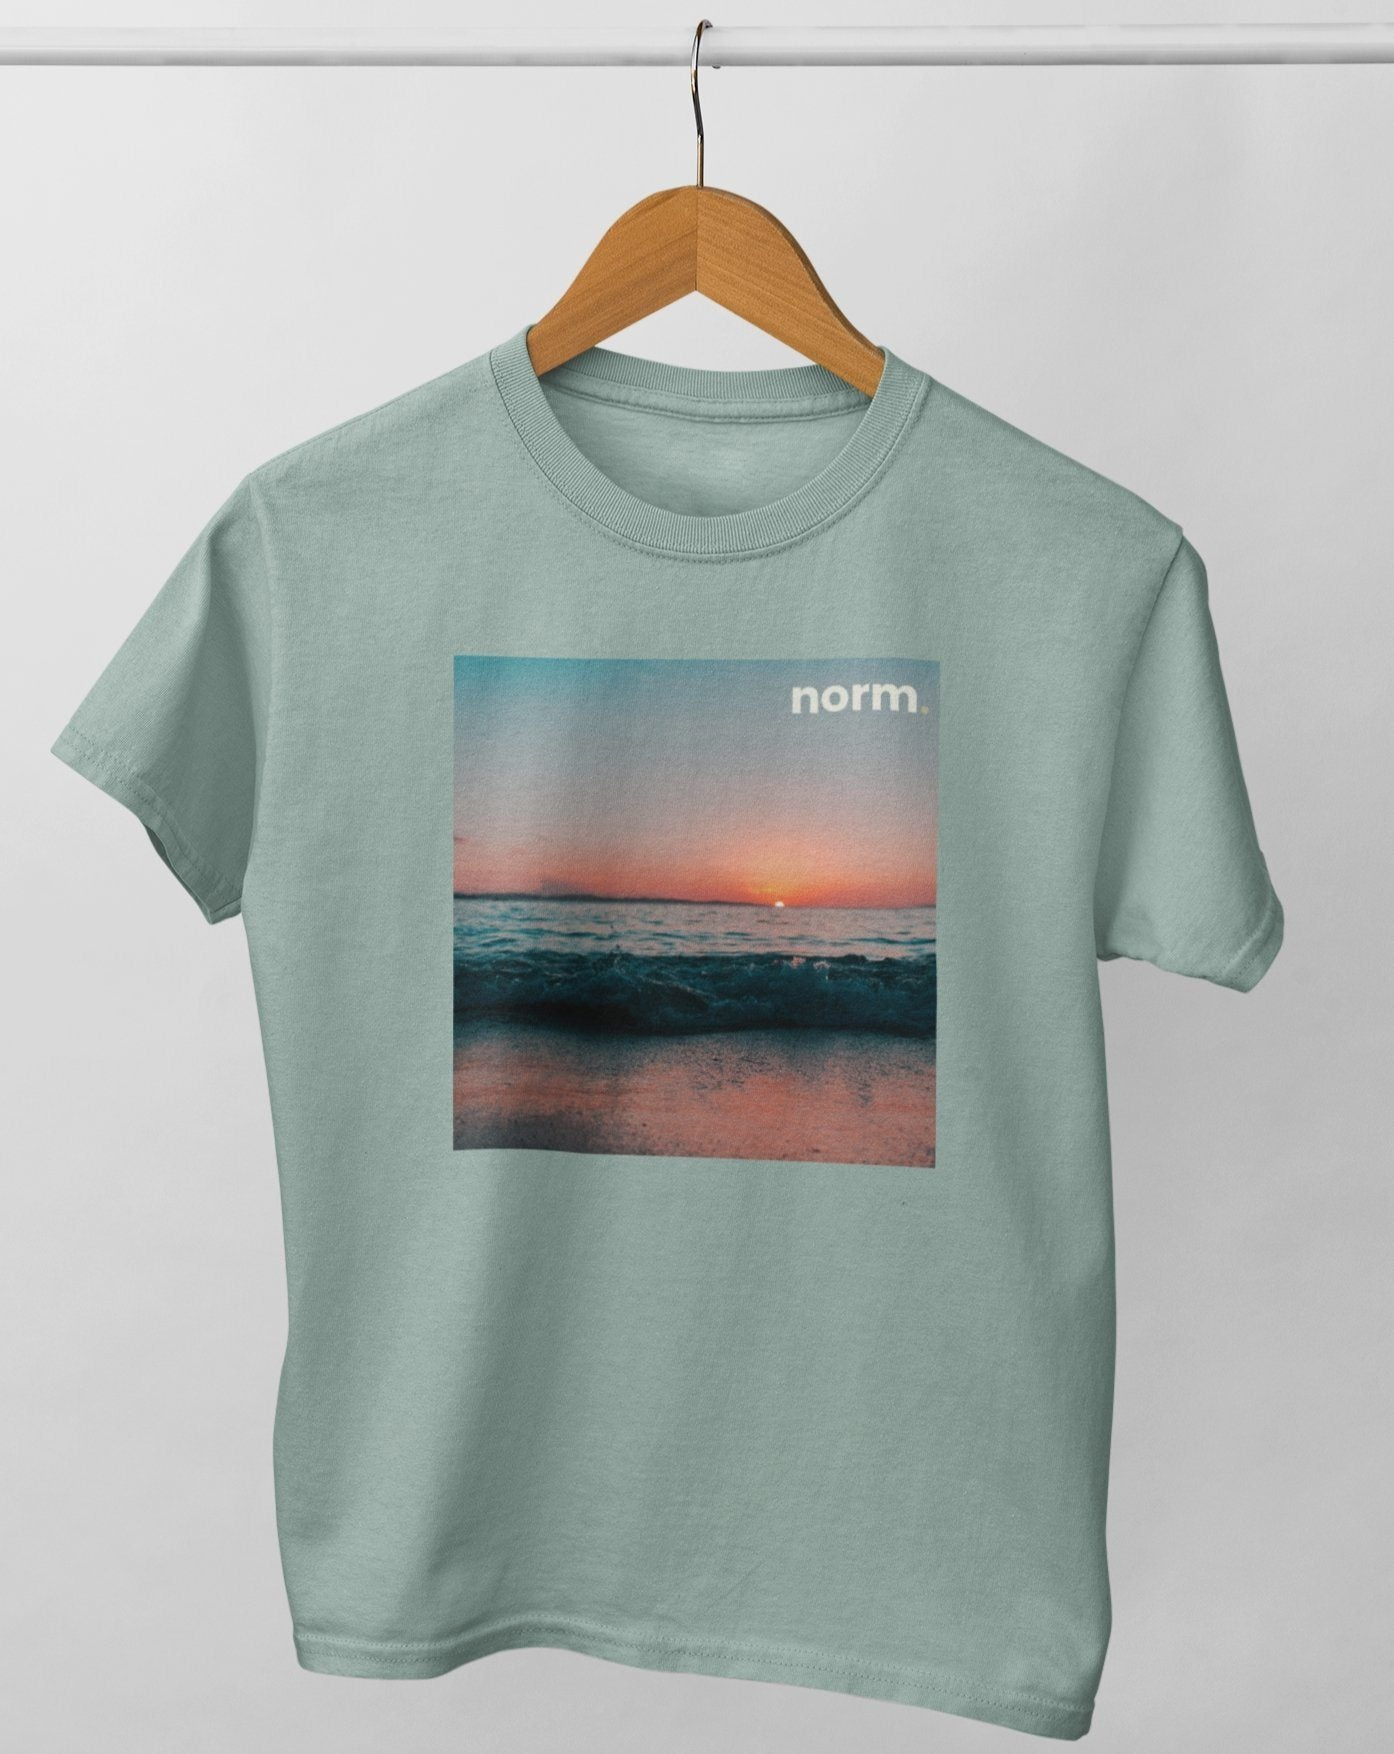 Danny adult tee. norm. Heather Green XS